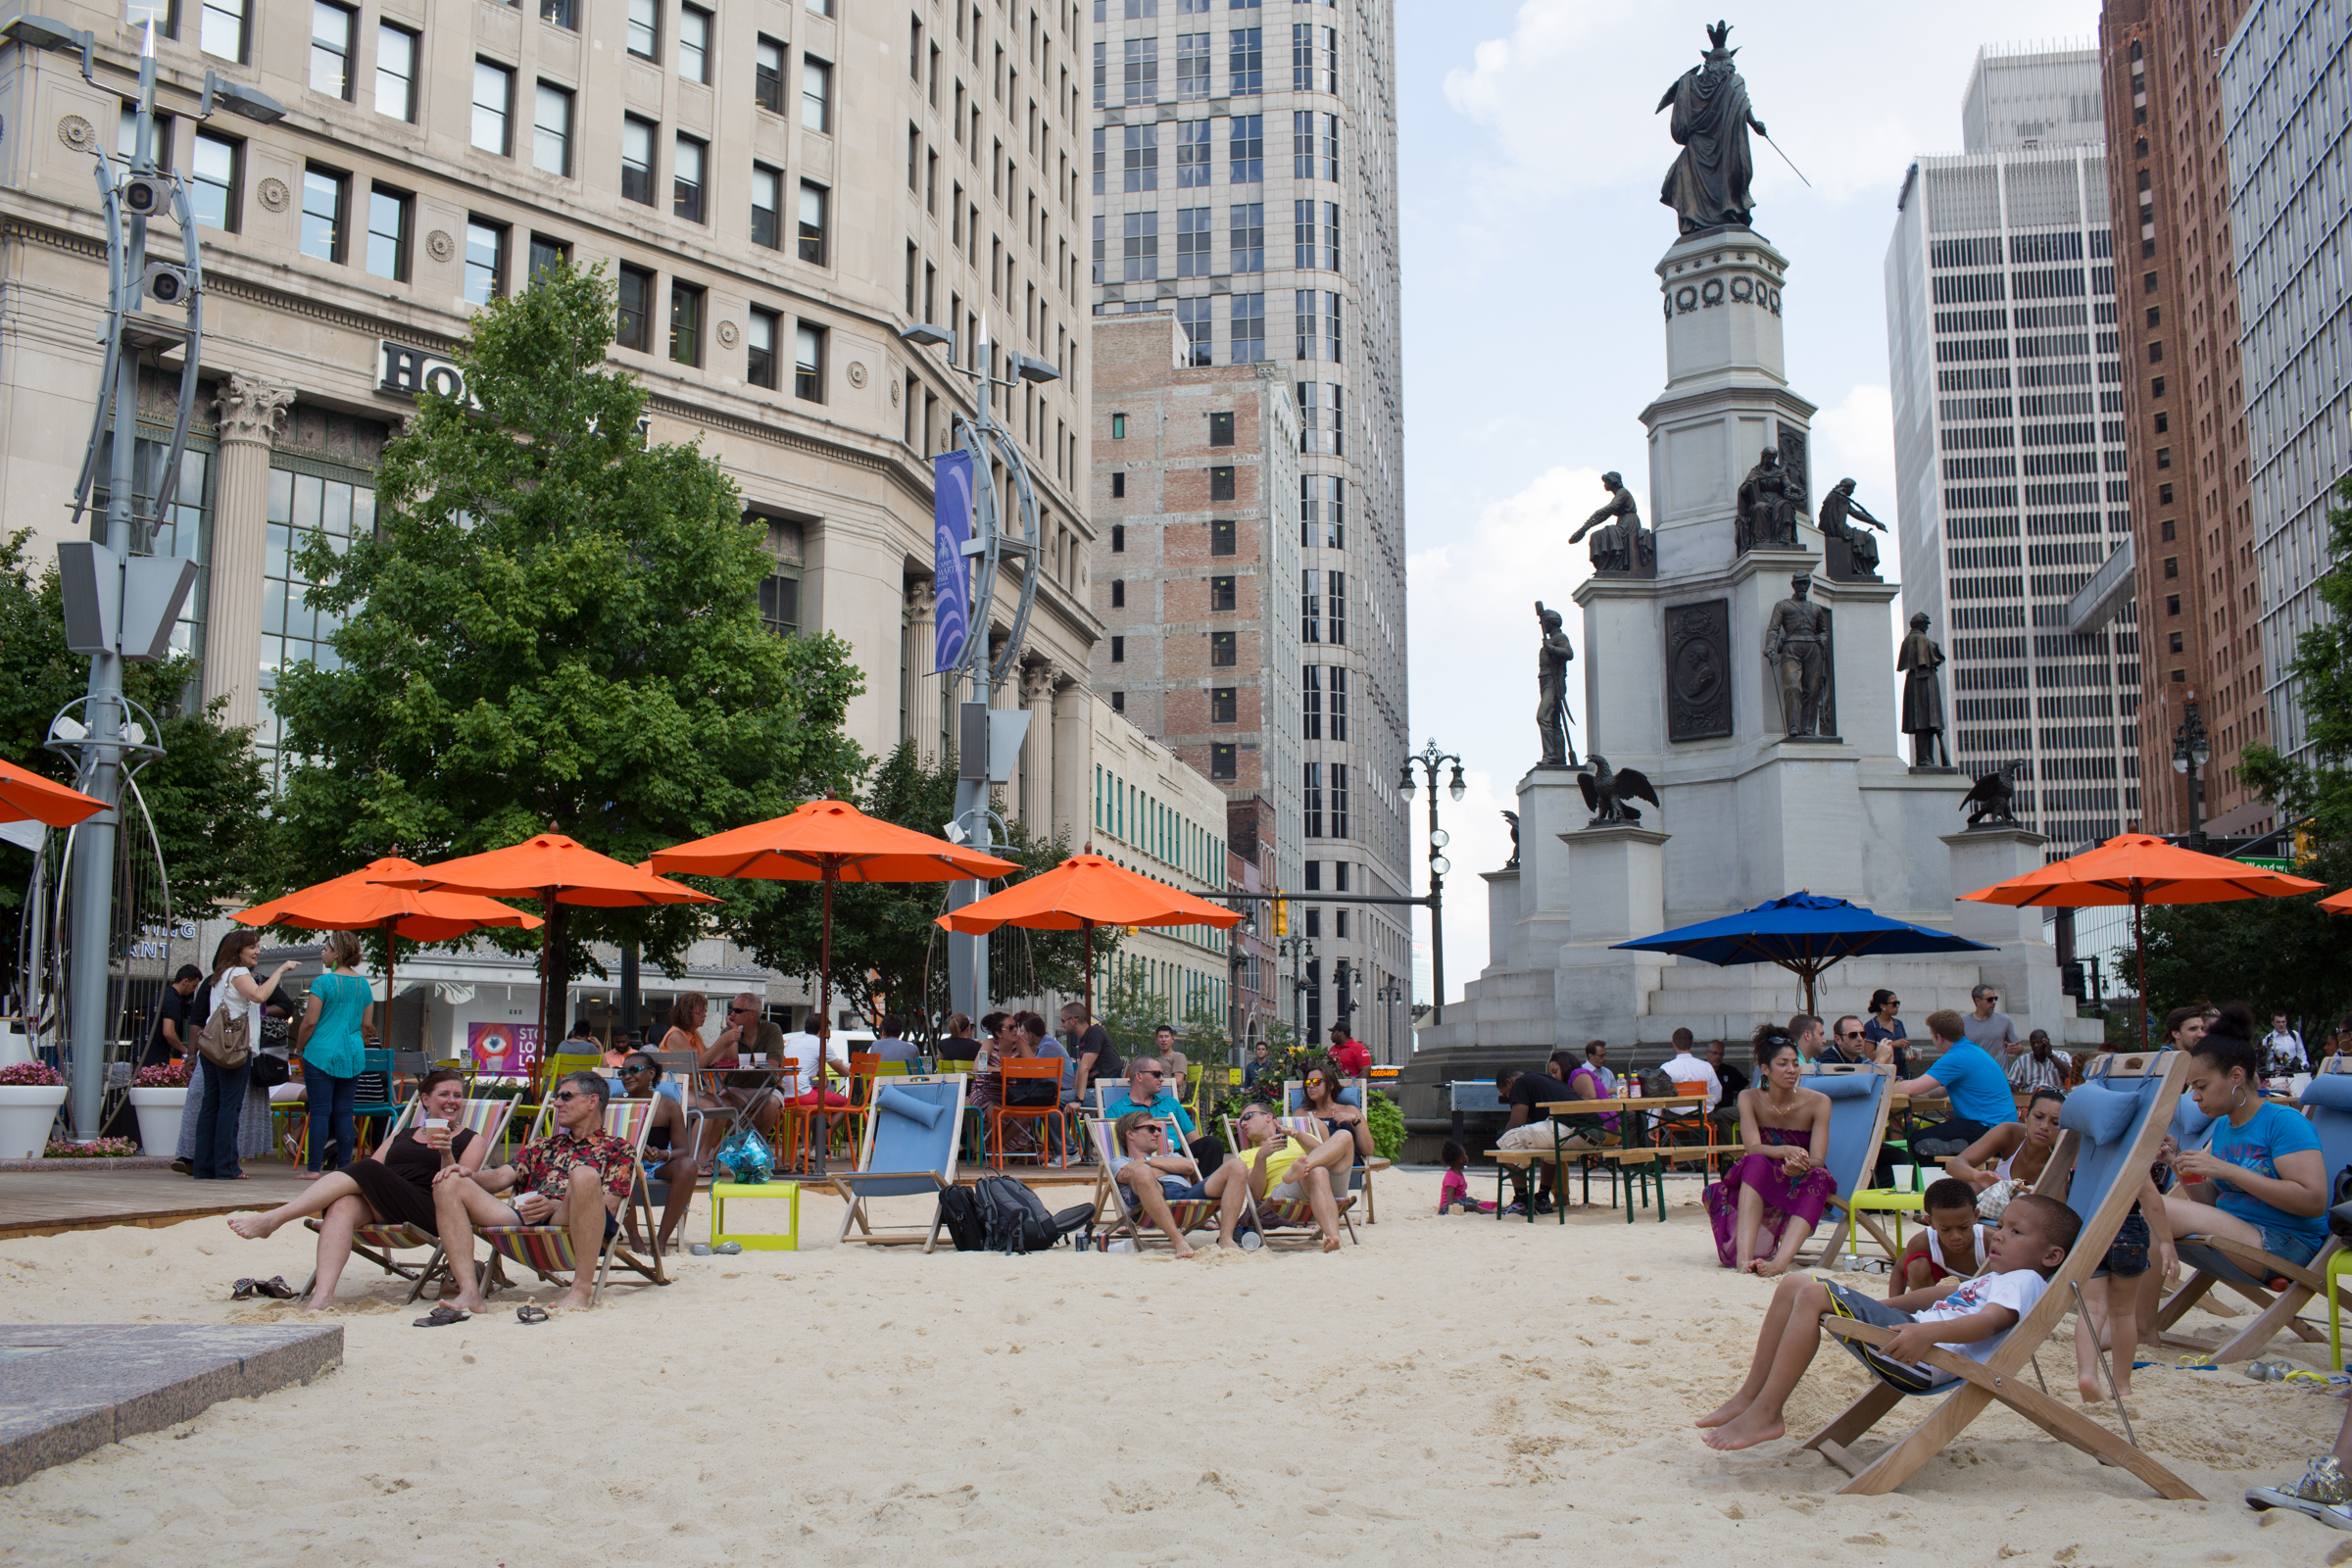 City Beach in Campus Martius Park, Detroit.